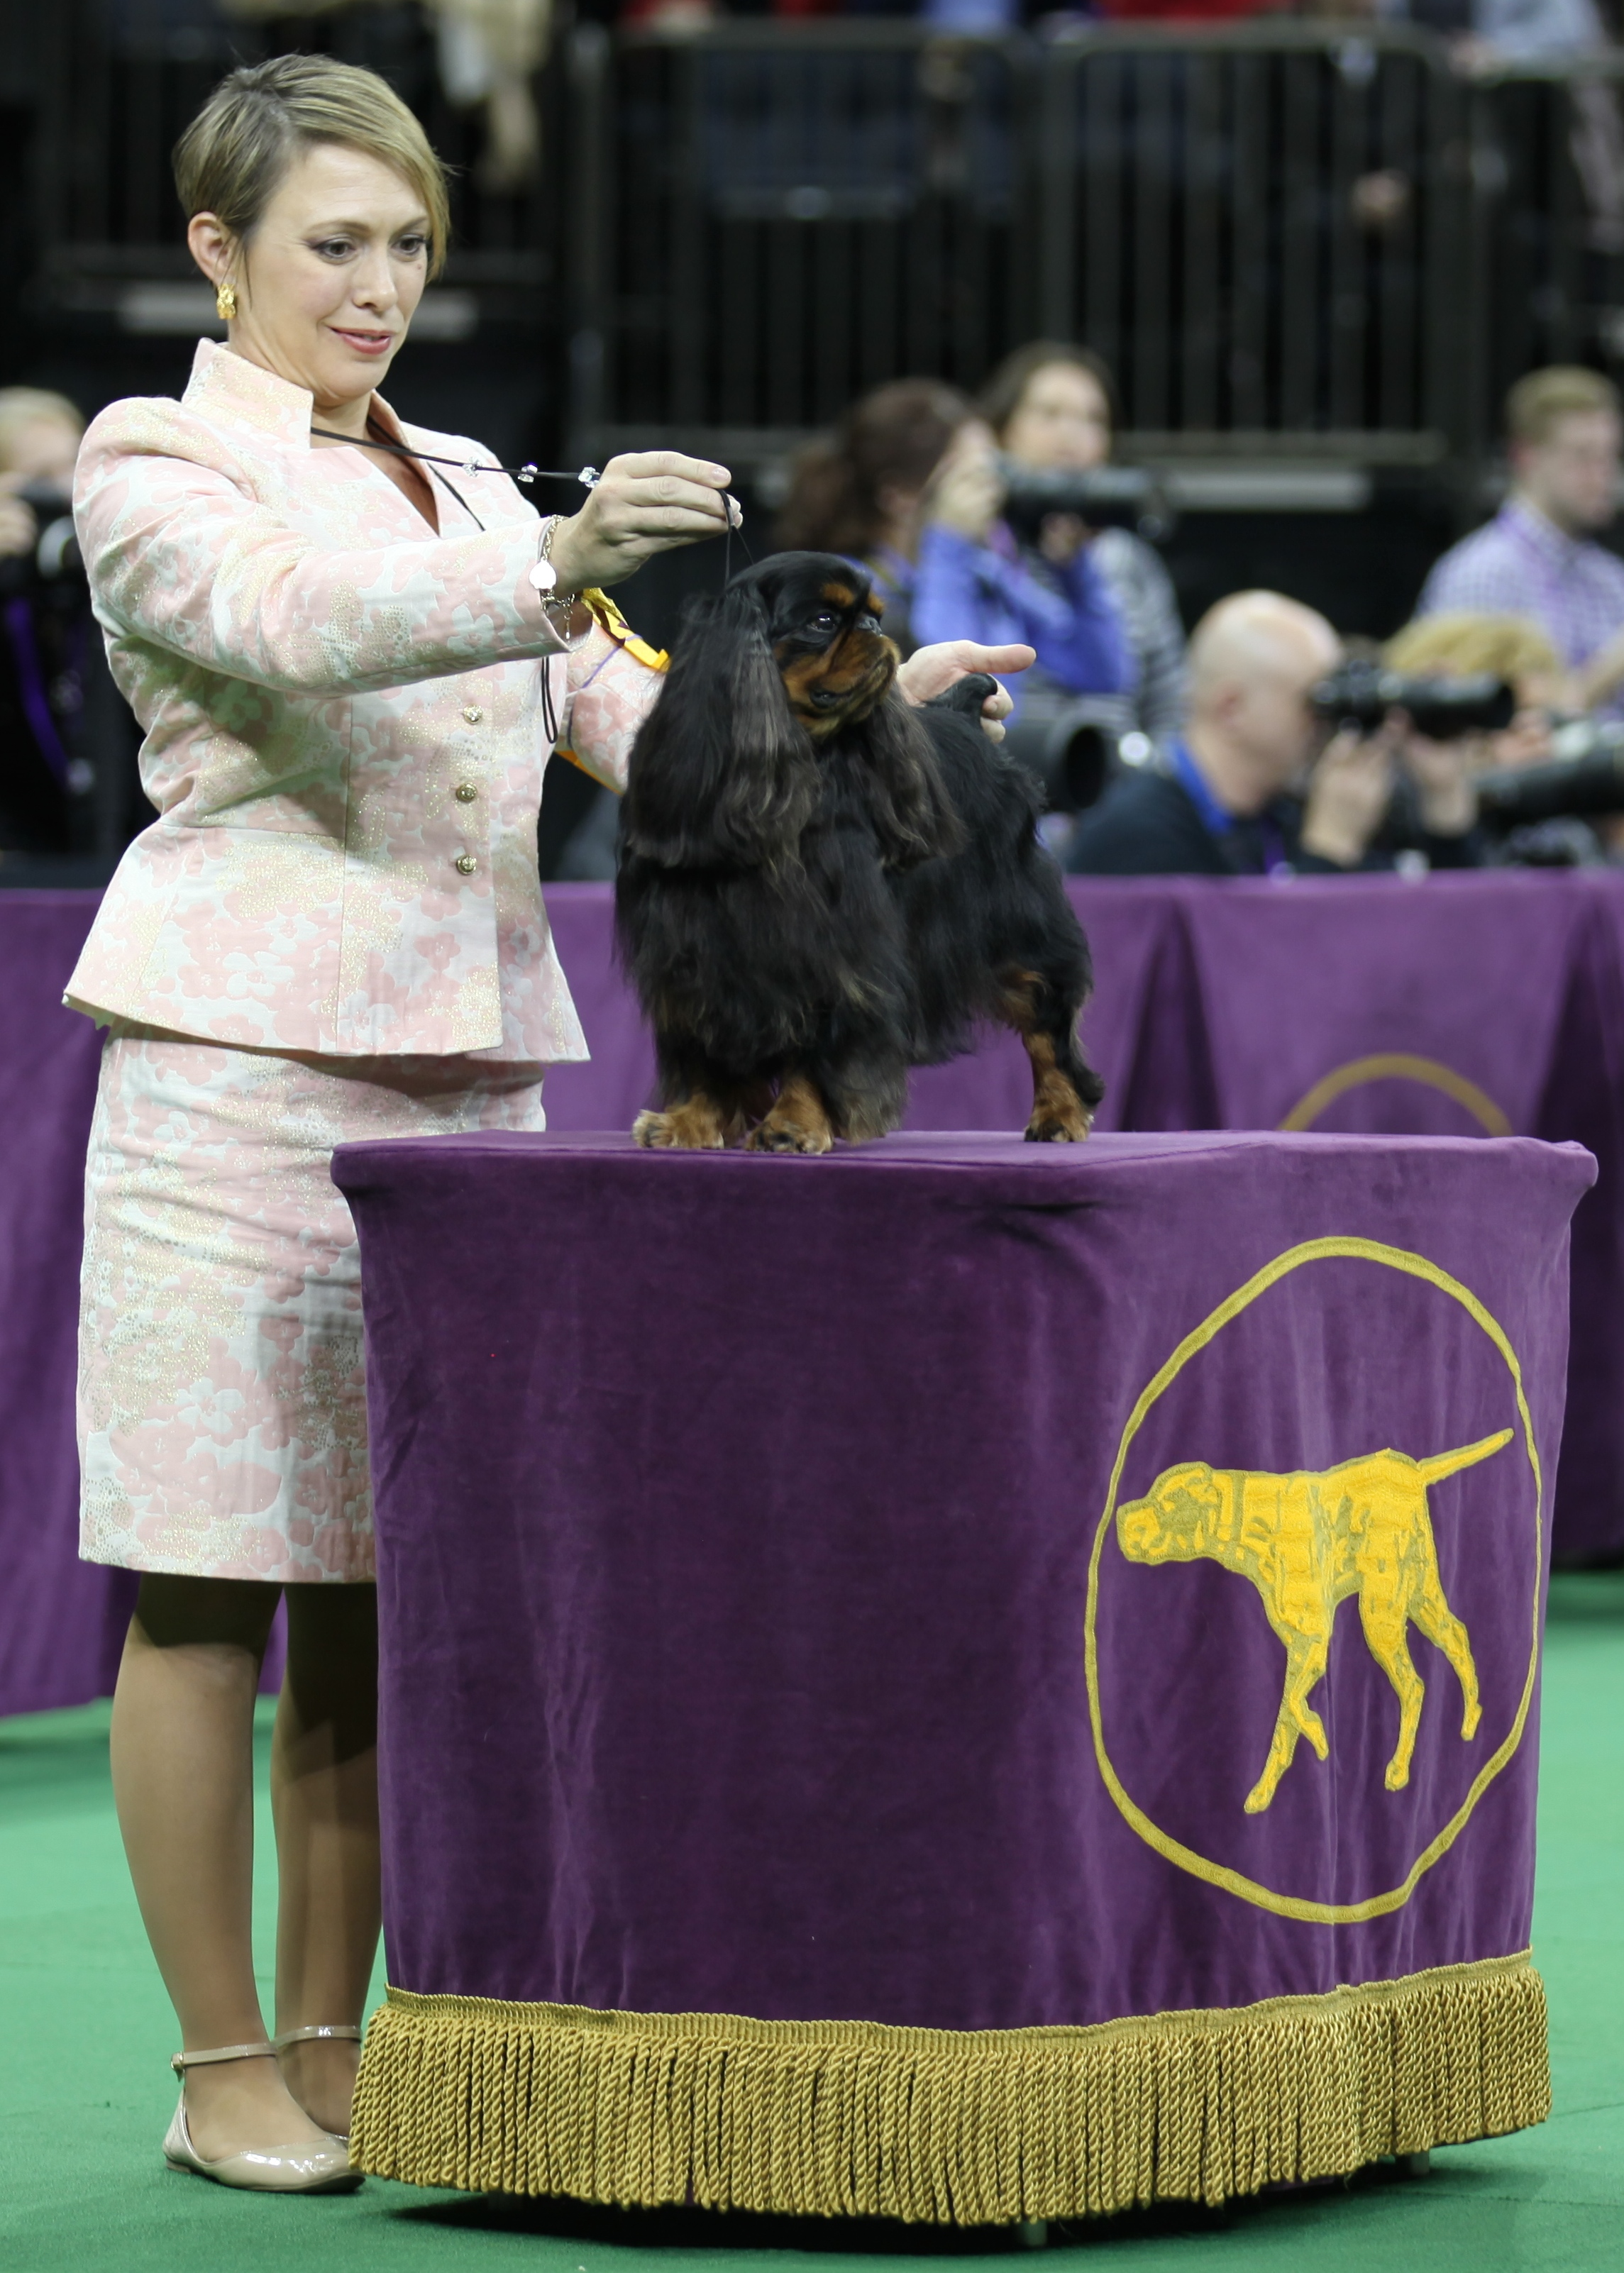 Derby_Westminster2015_ToyGroup